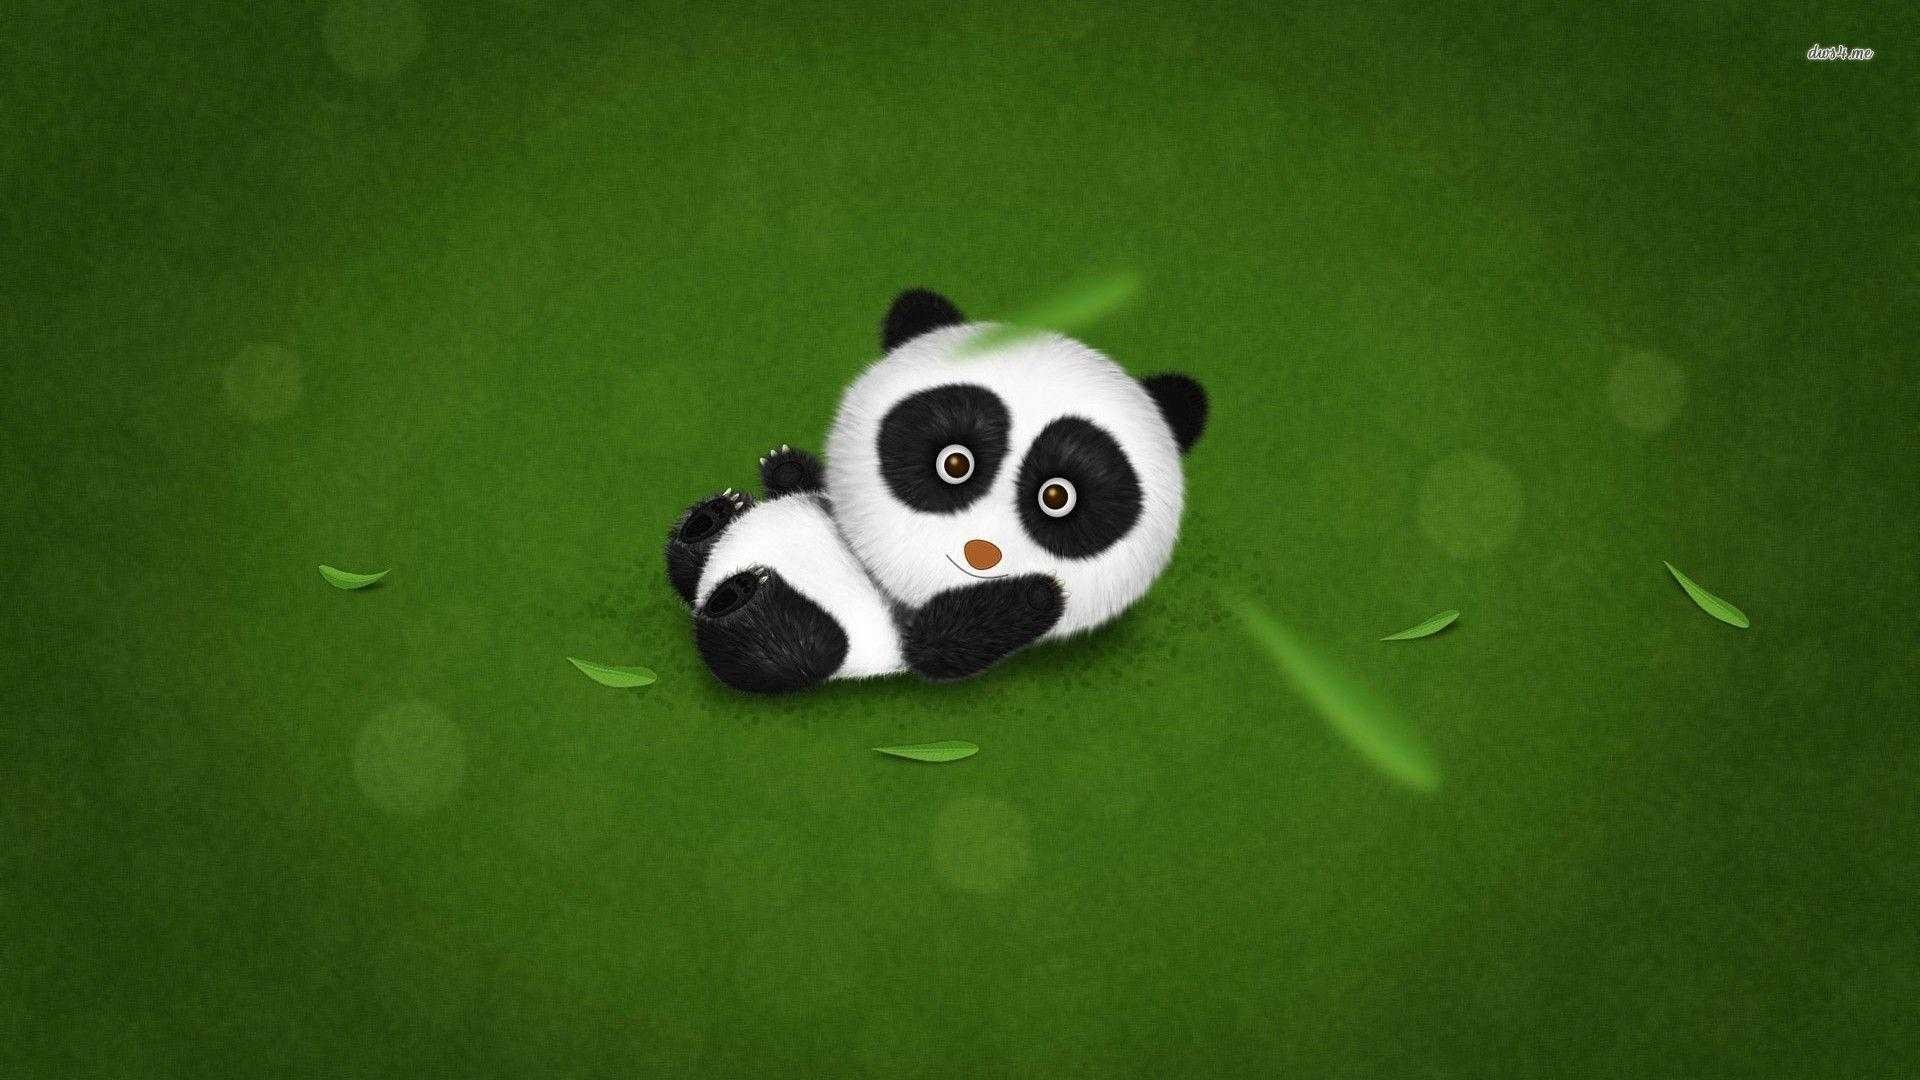 Res: 1920x1080, Cute Panda Wallpaper Computer Screen Backgrounds Baby For Iphone